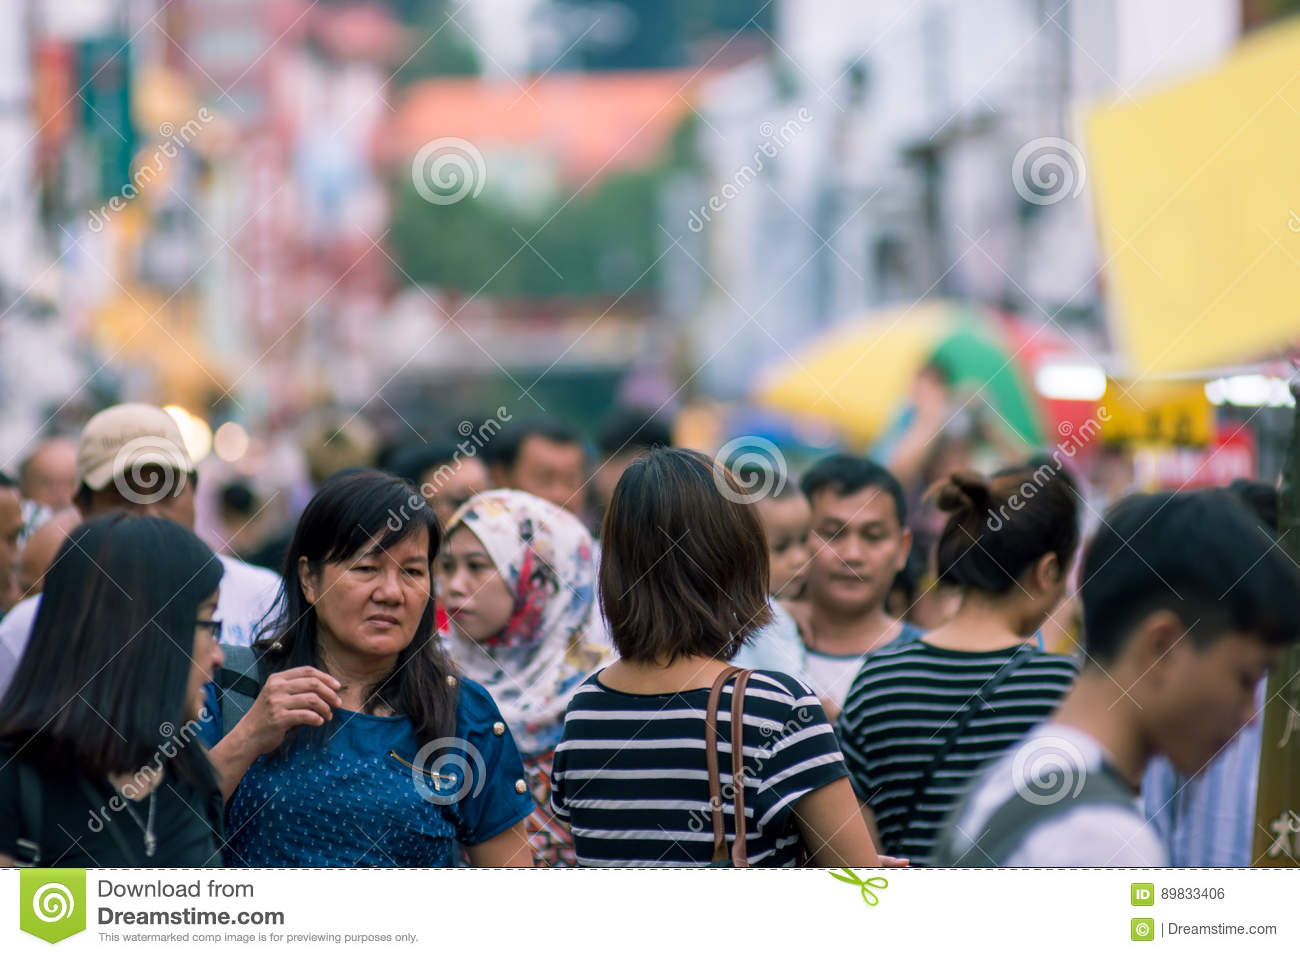 Blurred image of a crowd of people at a street market. Malacca,